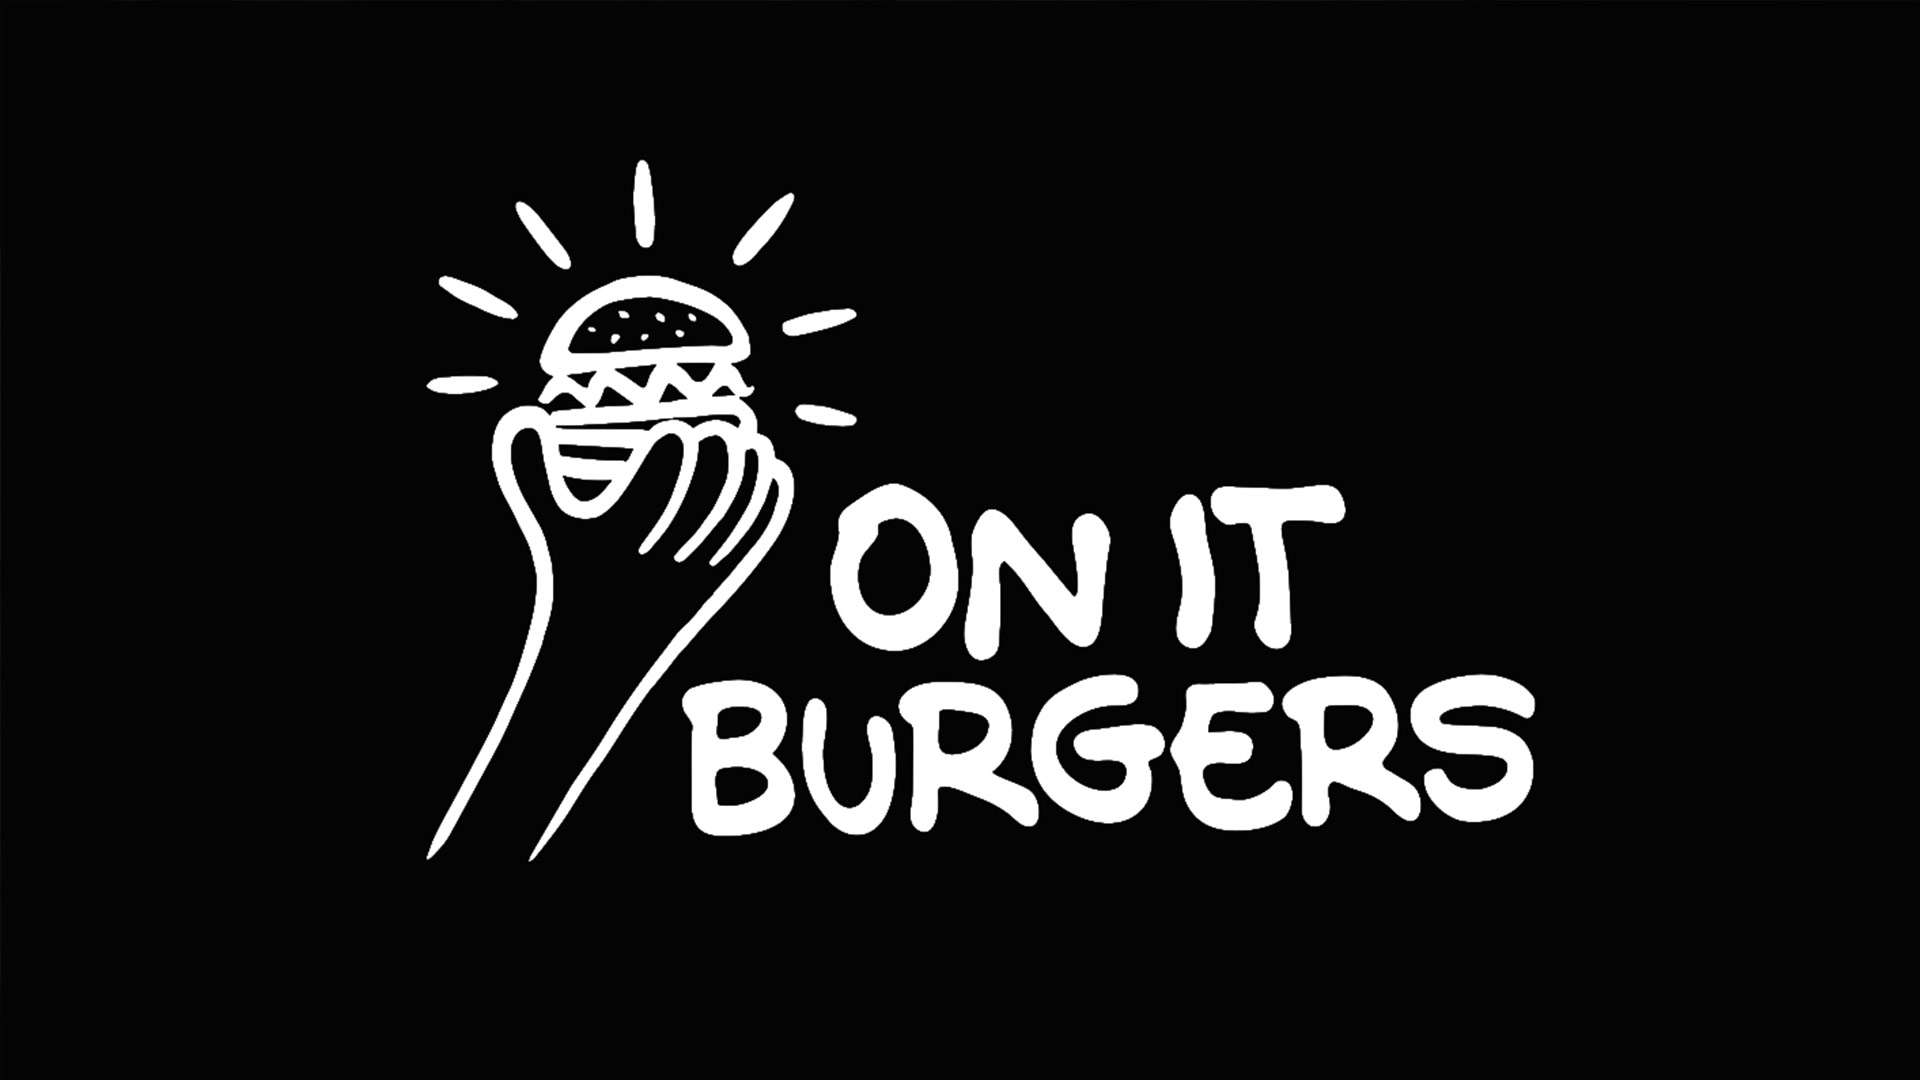 On It Burgers in Abbotsford gets a great review in Burgers of Melbourne Food Blog